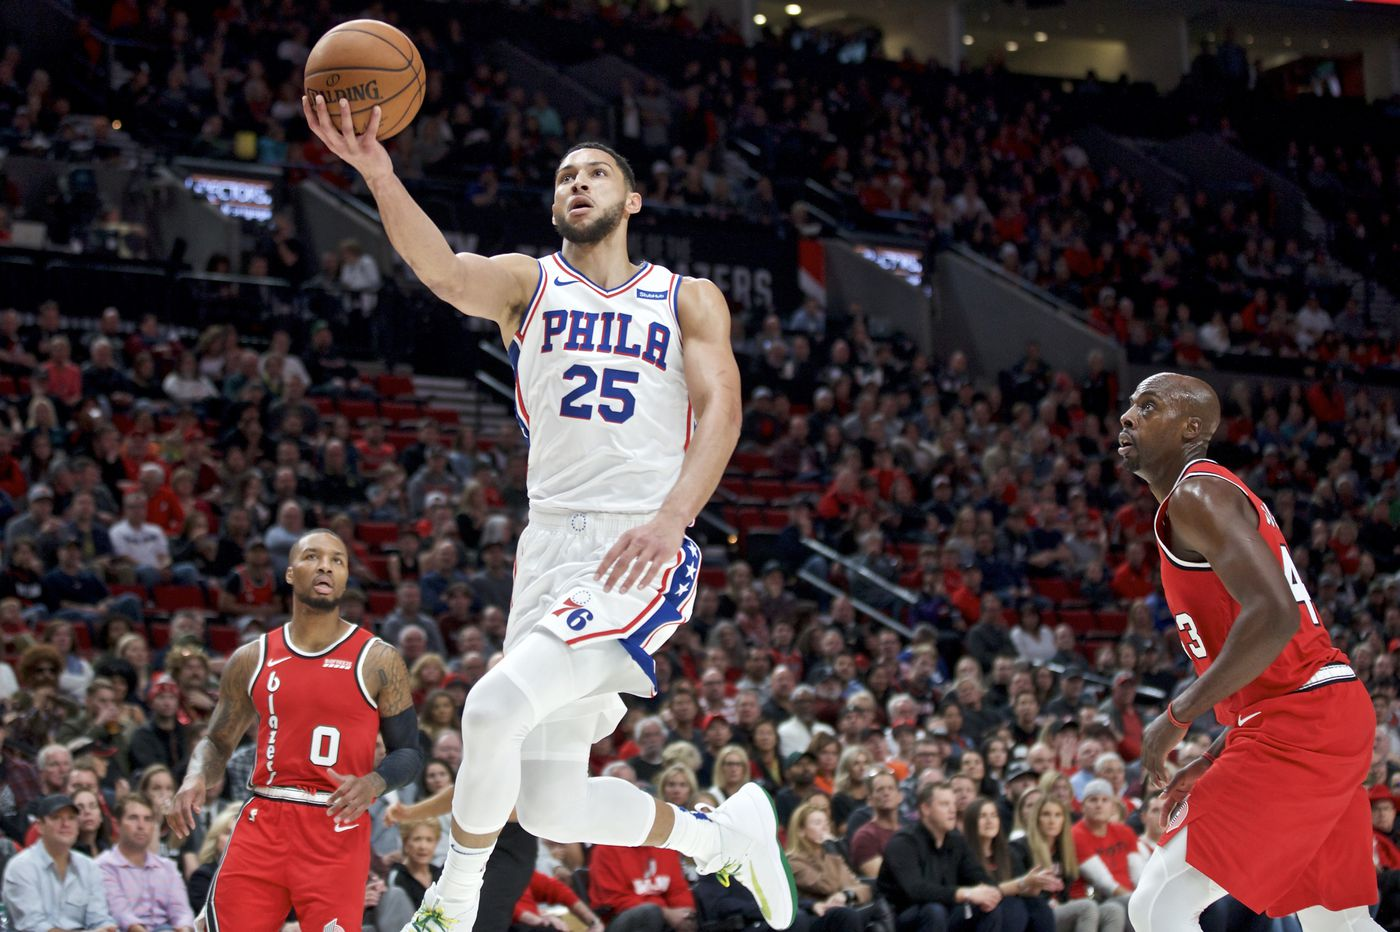 Sixers' Ben Simmons delivers clutch free throws in comeback win over Trail Blazers